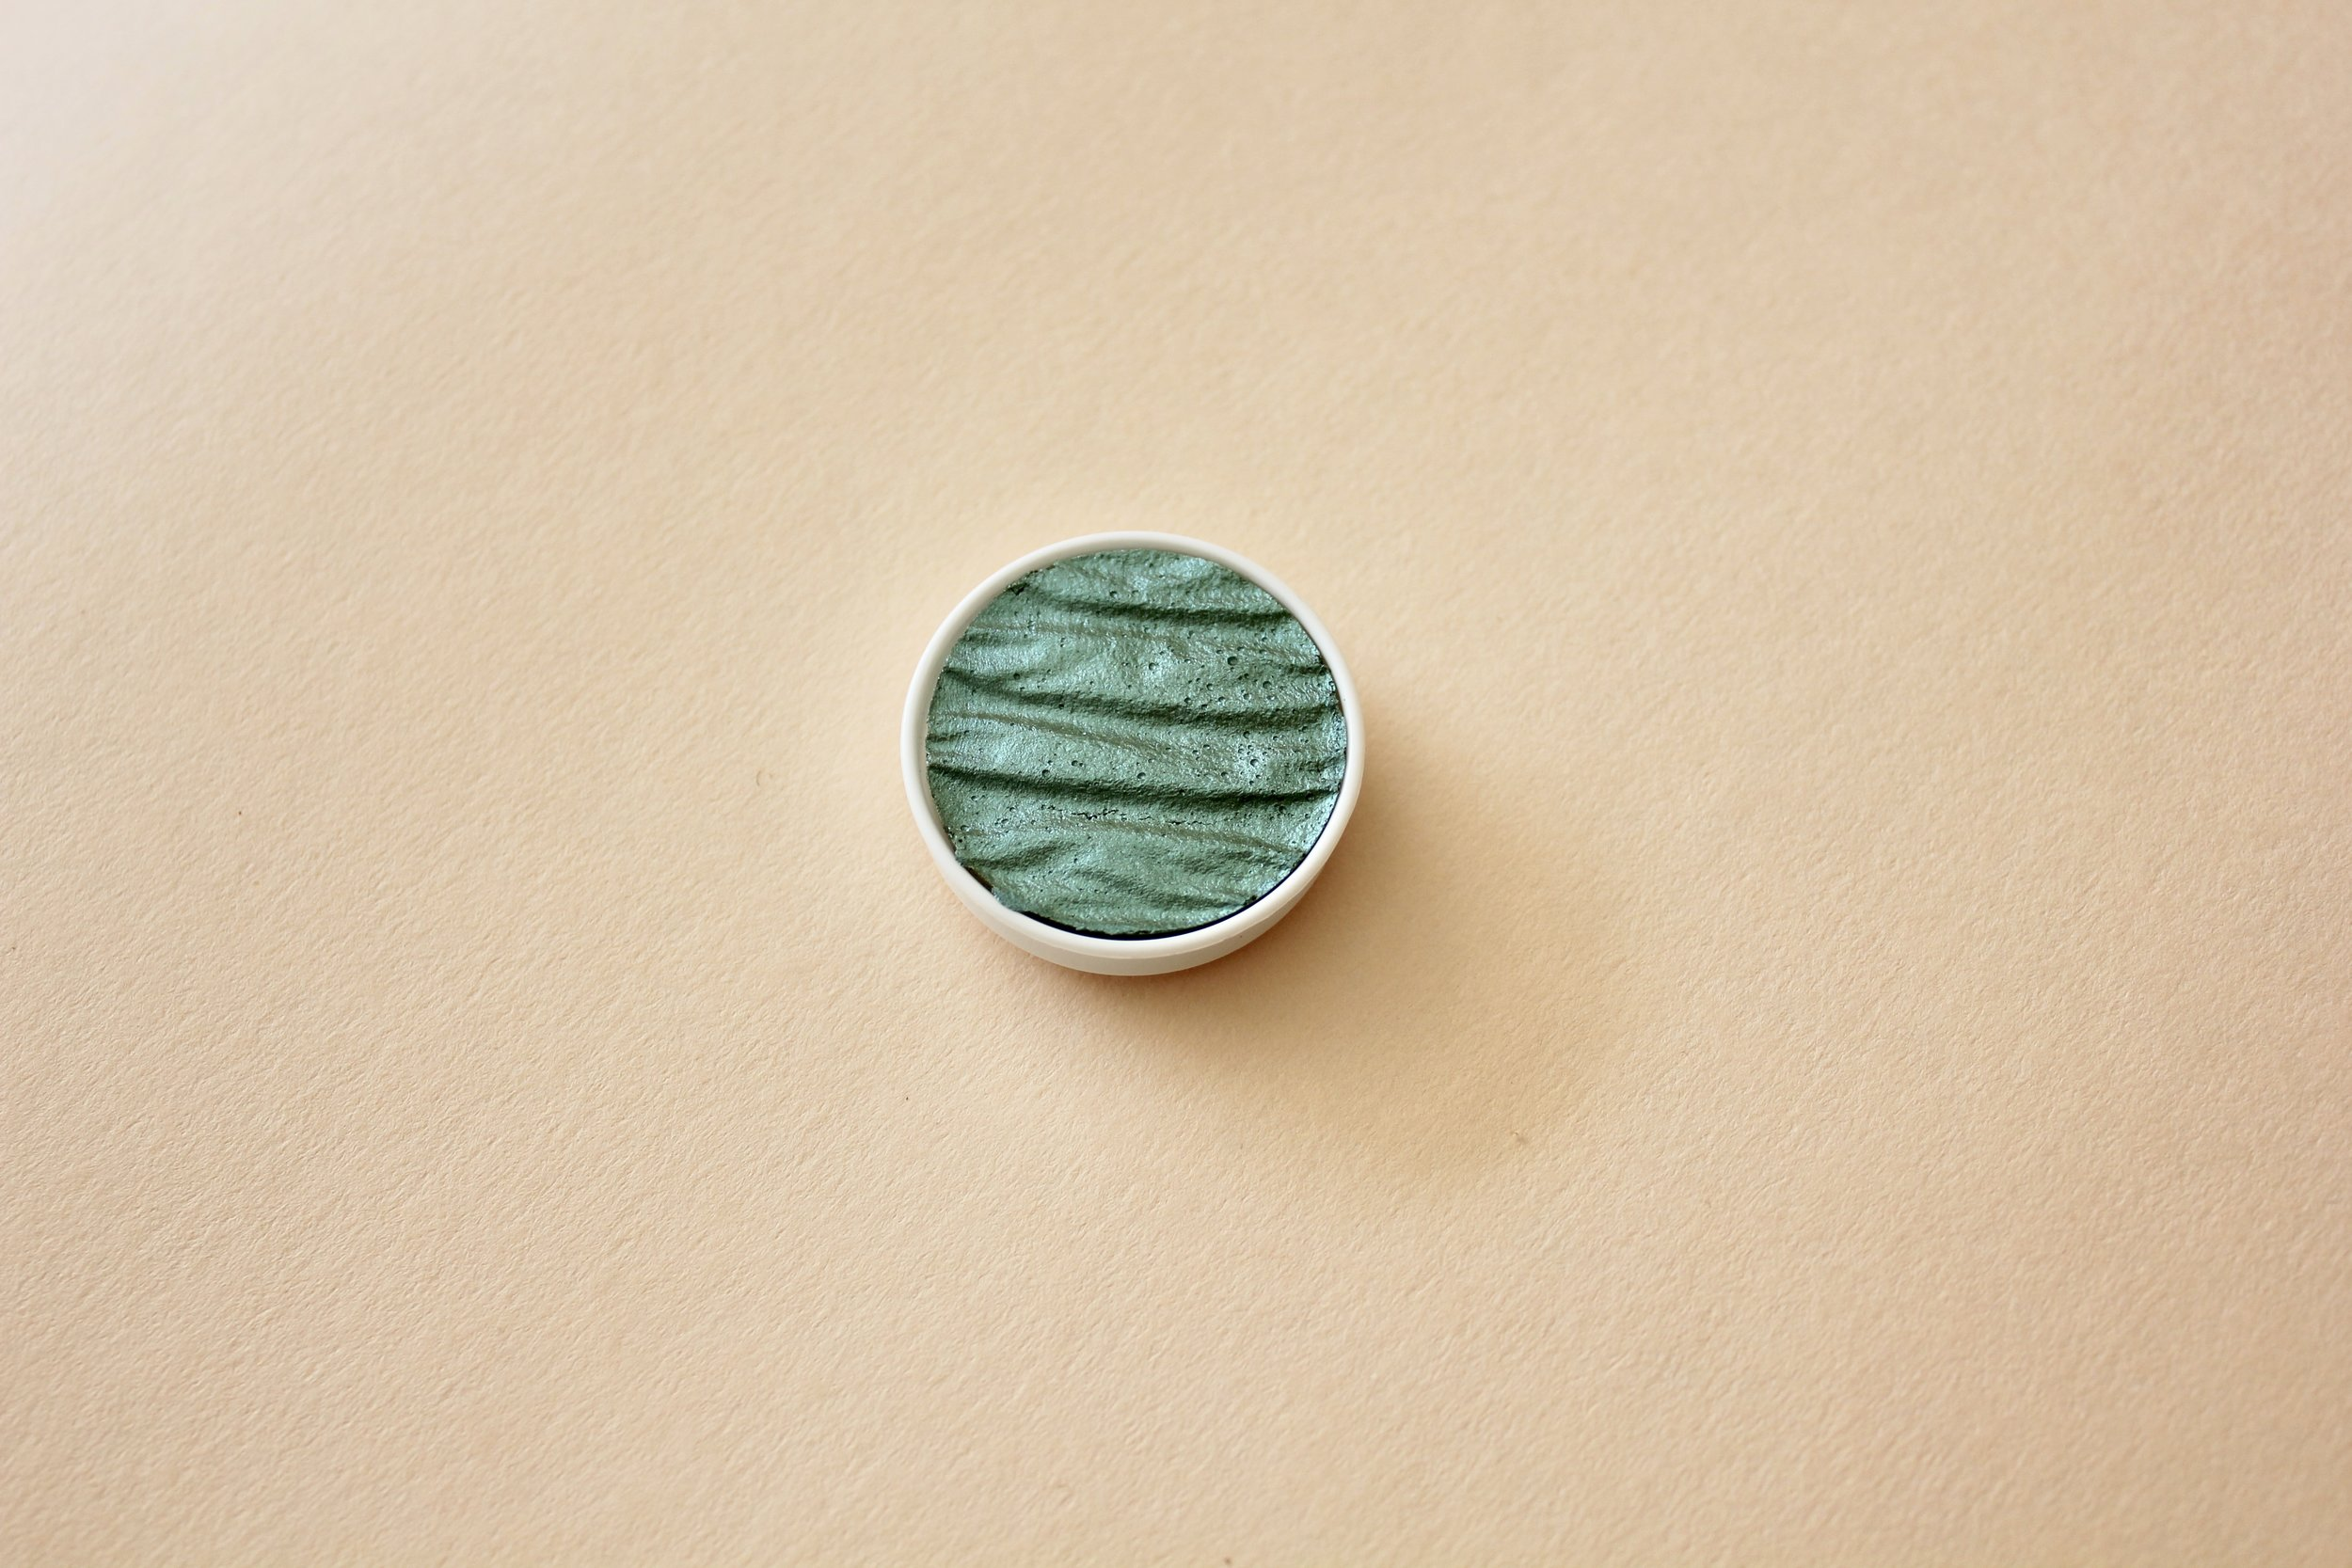 LR00094 Coliro Blue Green 30mm ($8)